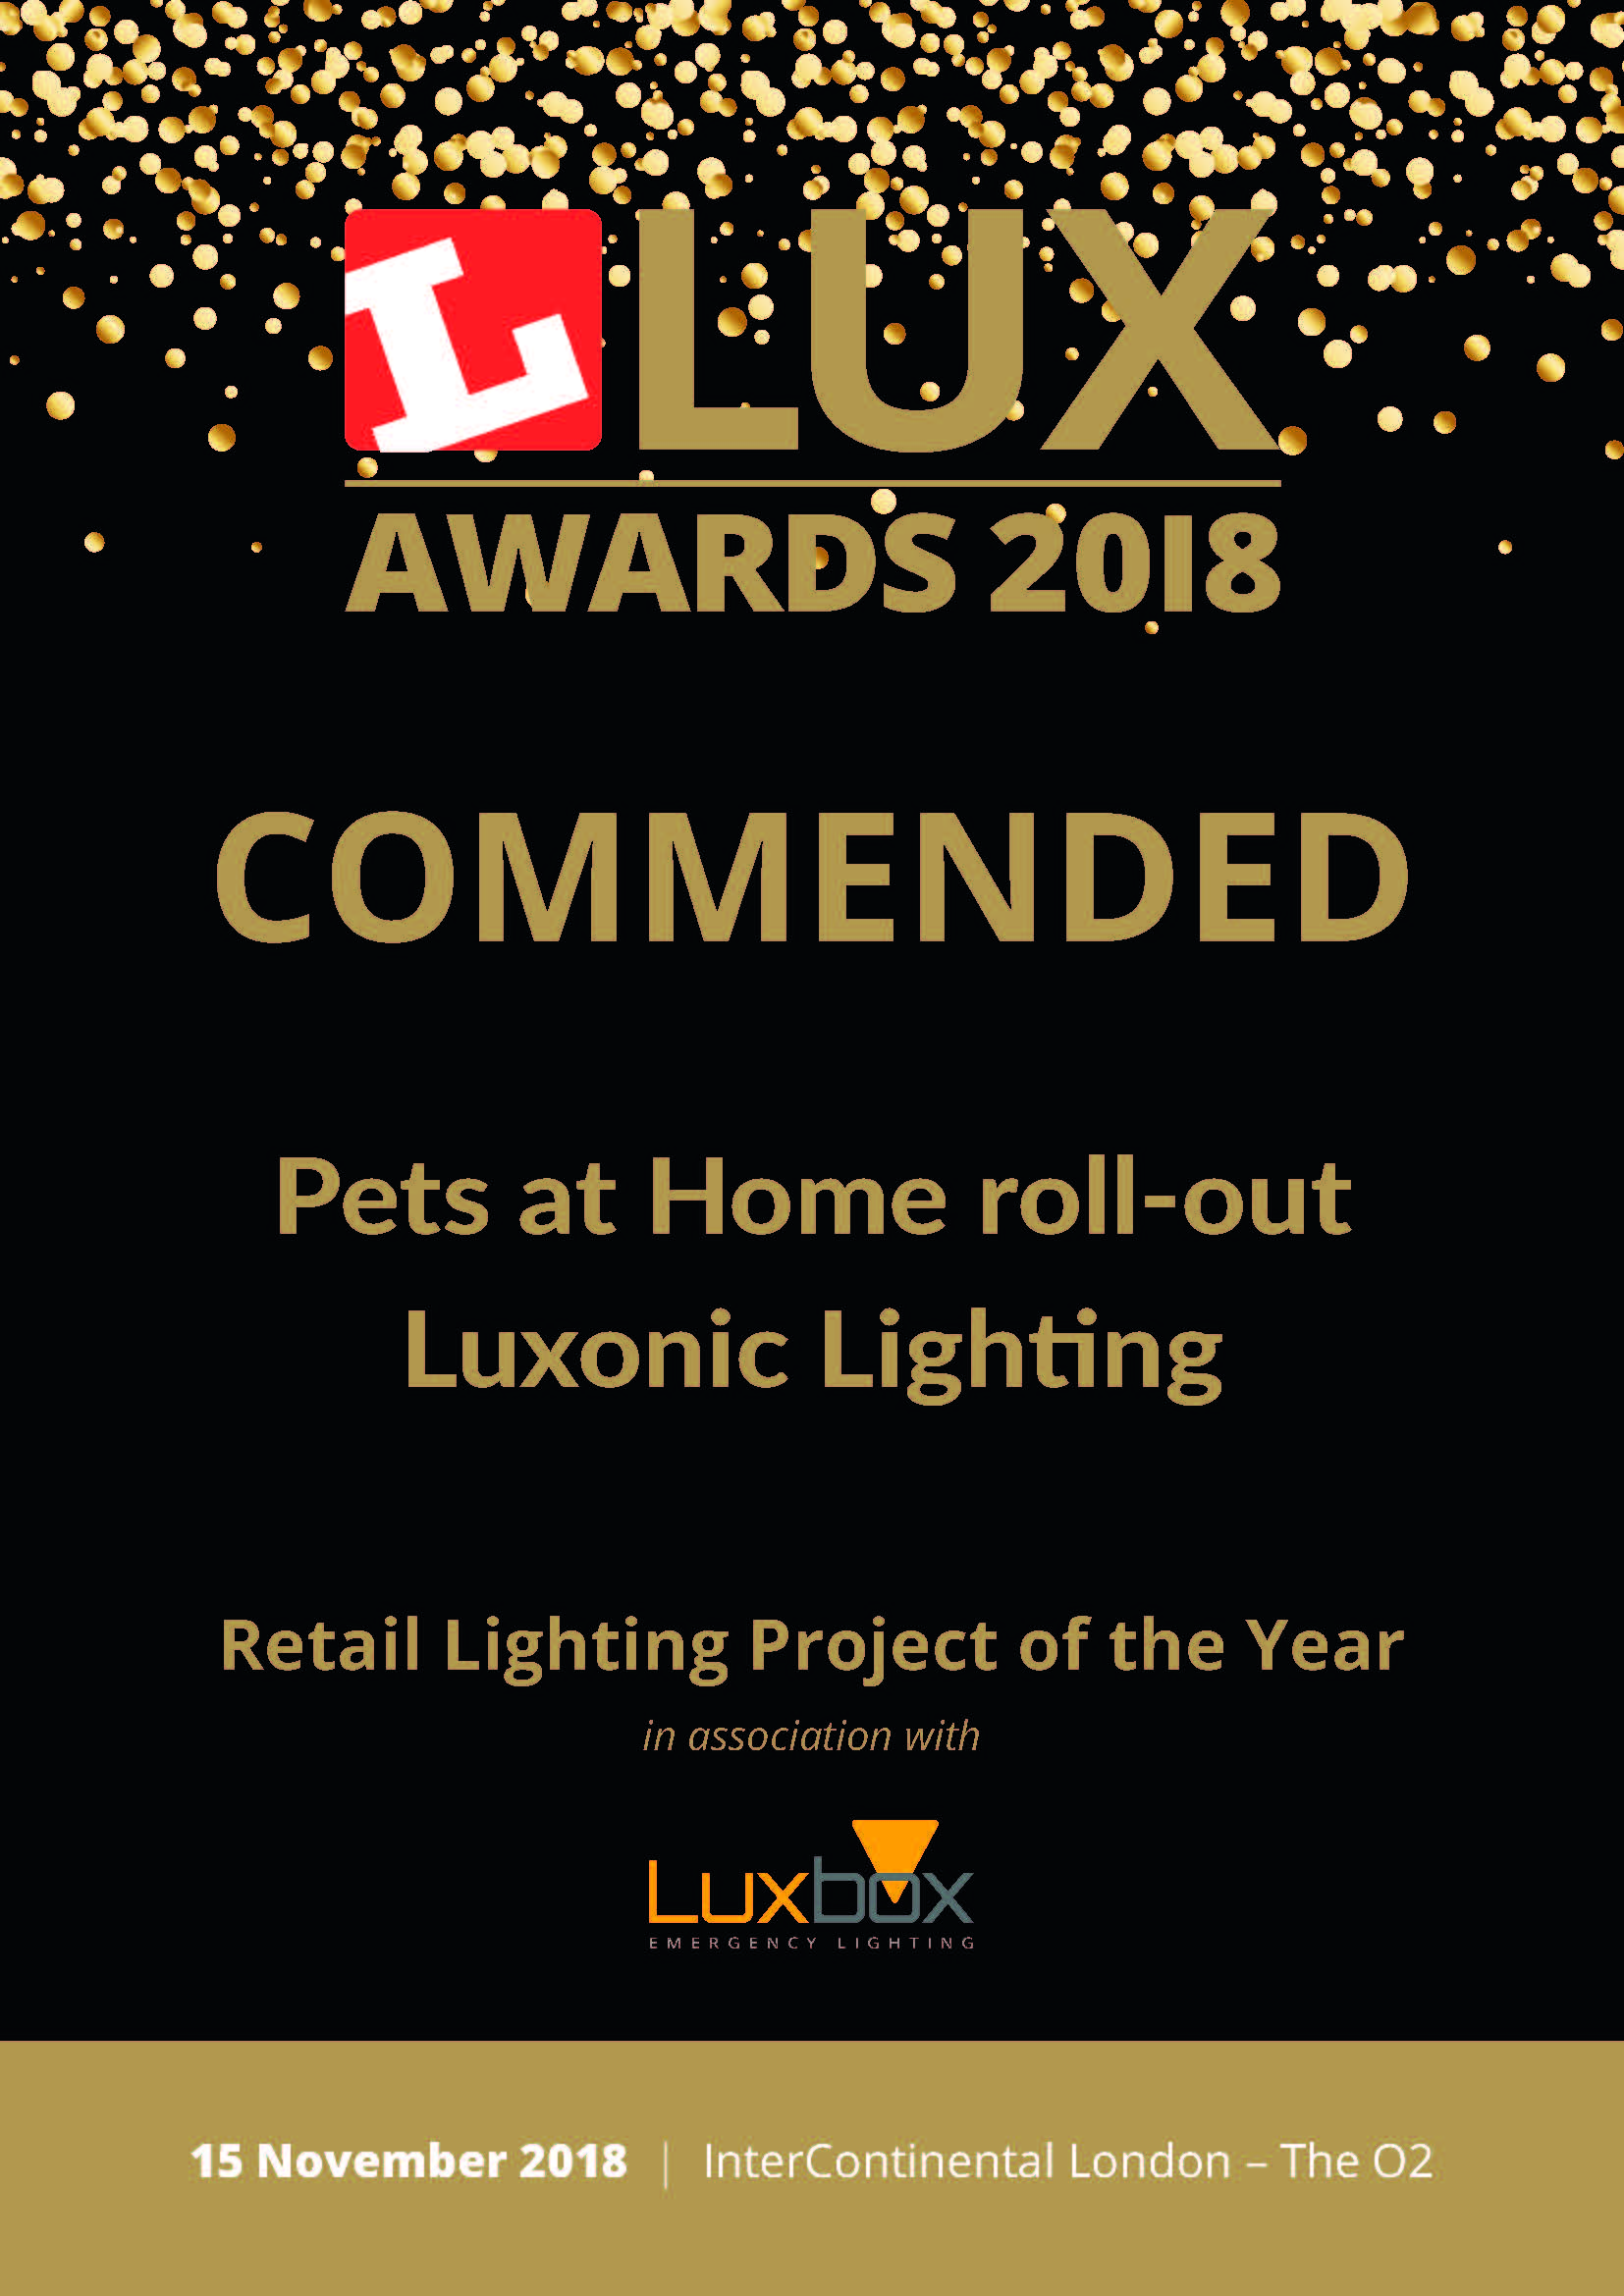 Lux Awards Commendation for Hi-Max